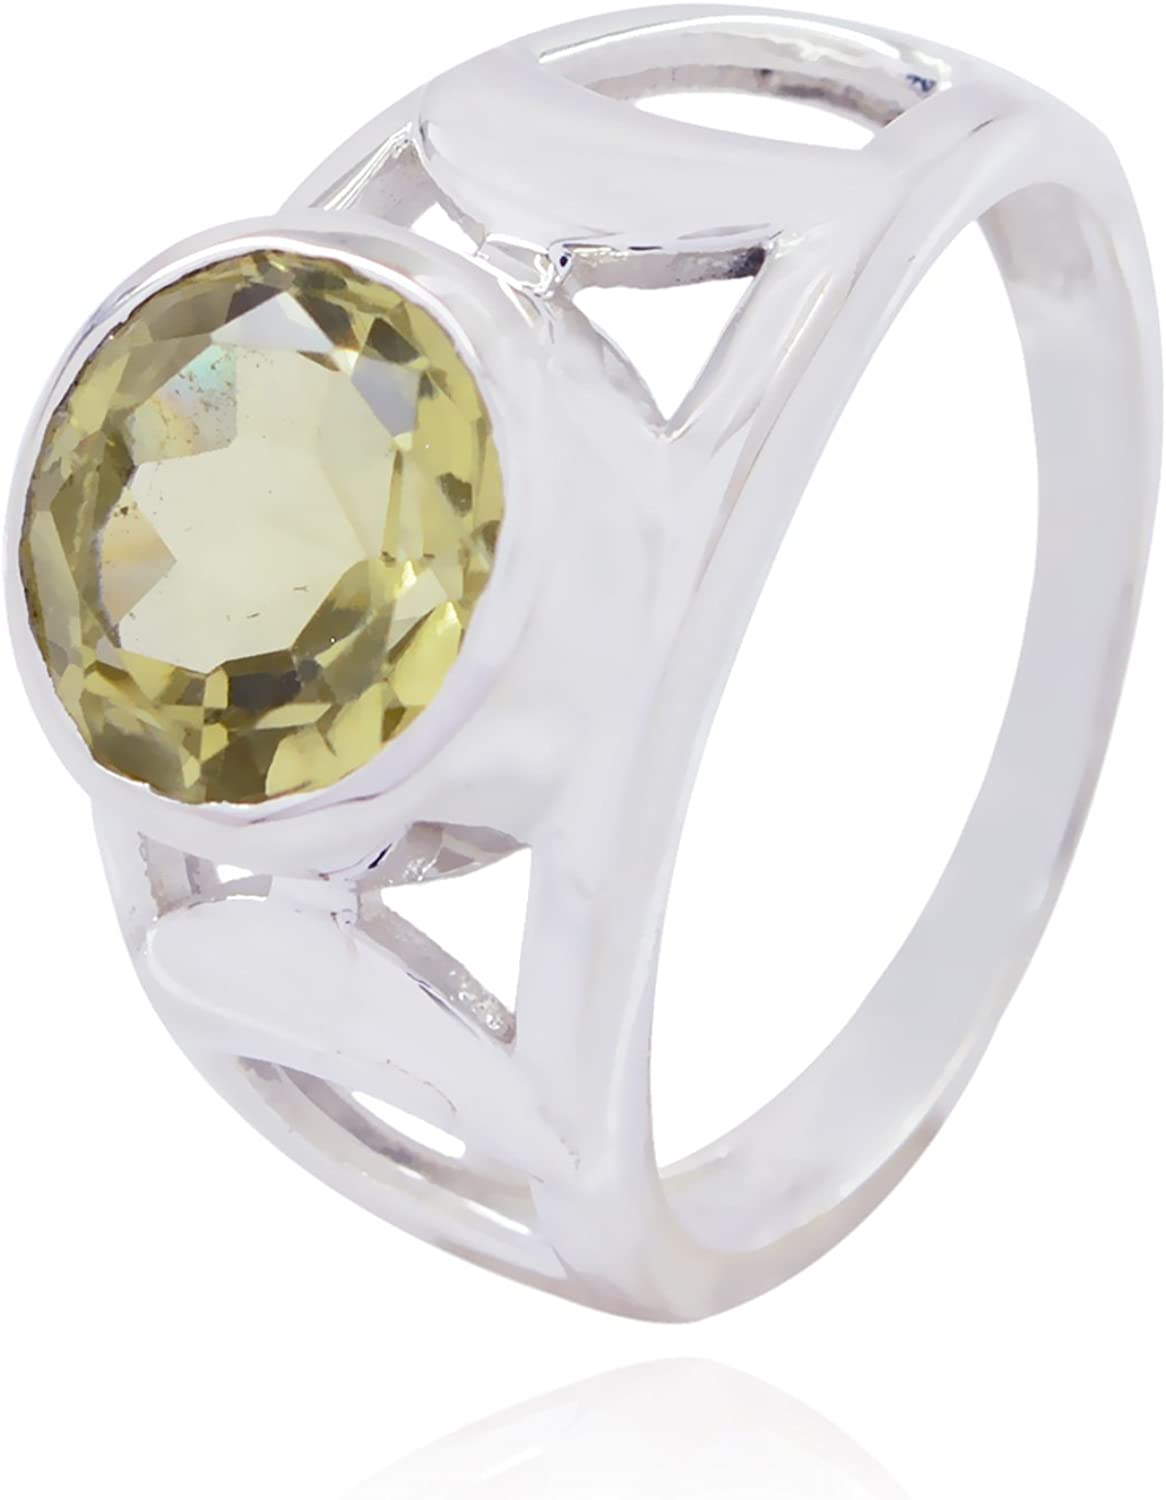 Solid Silver Yellow Lemon Quartz Real Gemstones Ring Real Gemstones Round Faceted Lemon Quartz Ring Kids Jewelry Great Selling Shops Gift for Teachers Day Bridesmaid Ring